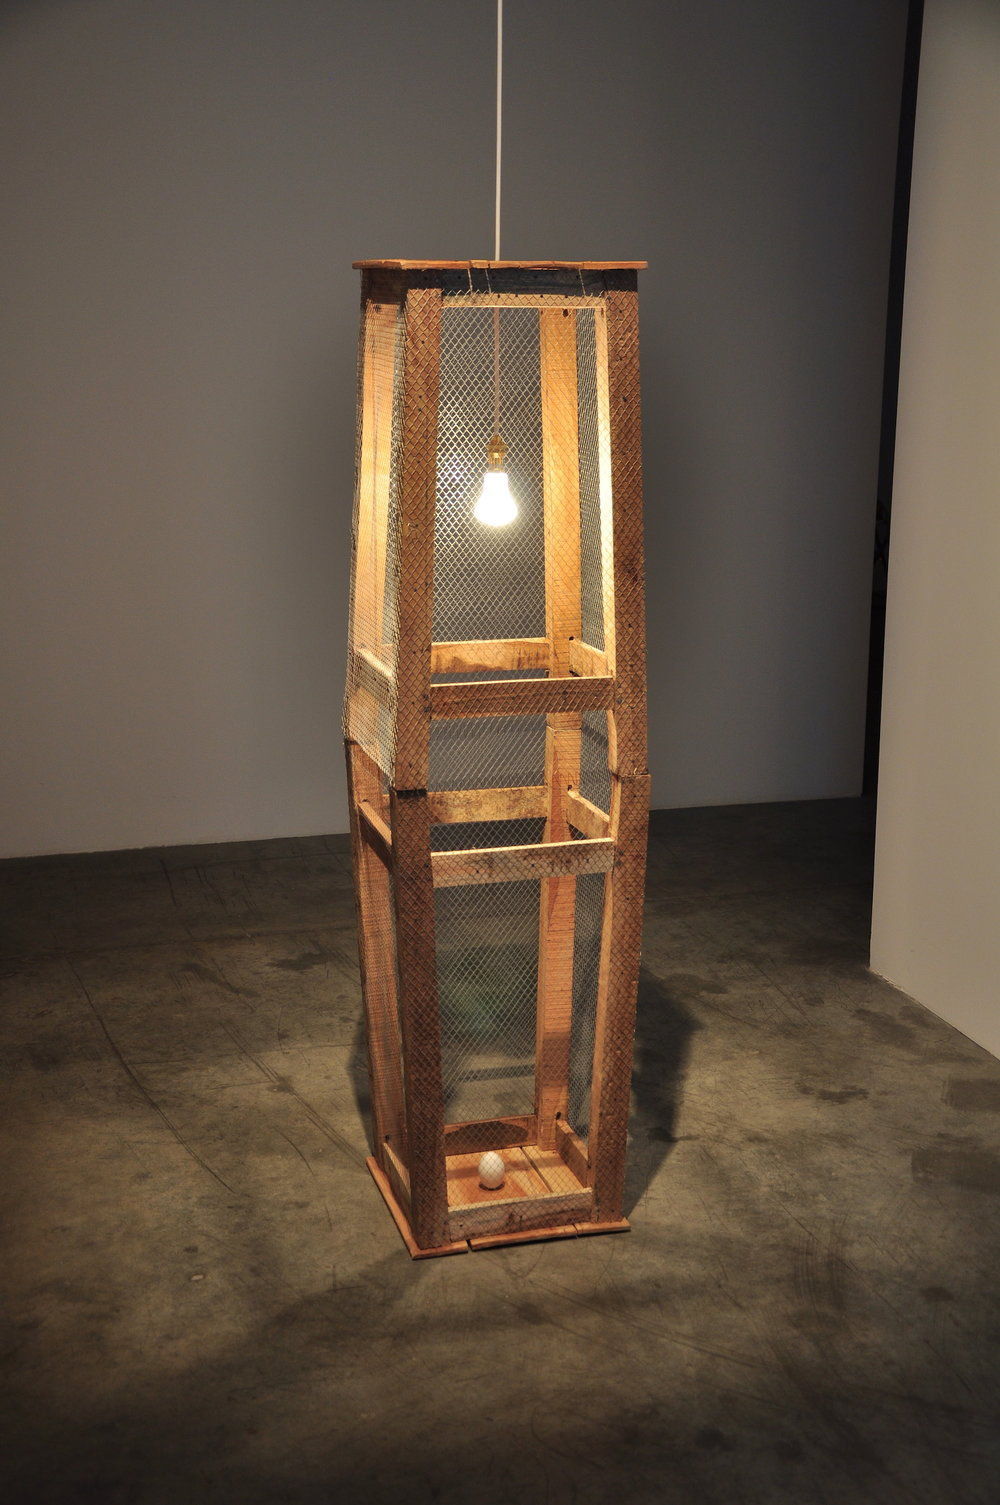 Ehsan ul Haq  Creation of Adam 2011 Wooden stools, chicken mesh, light bulb & an egg 152.4 x 45.7 x 45.7 cm Edition of 3+1AP